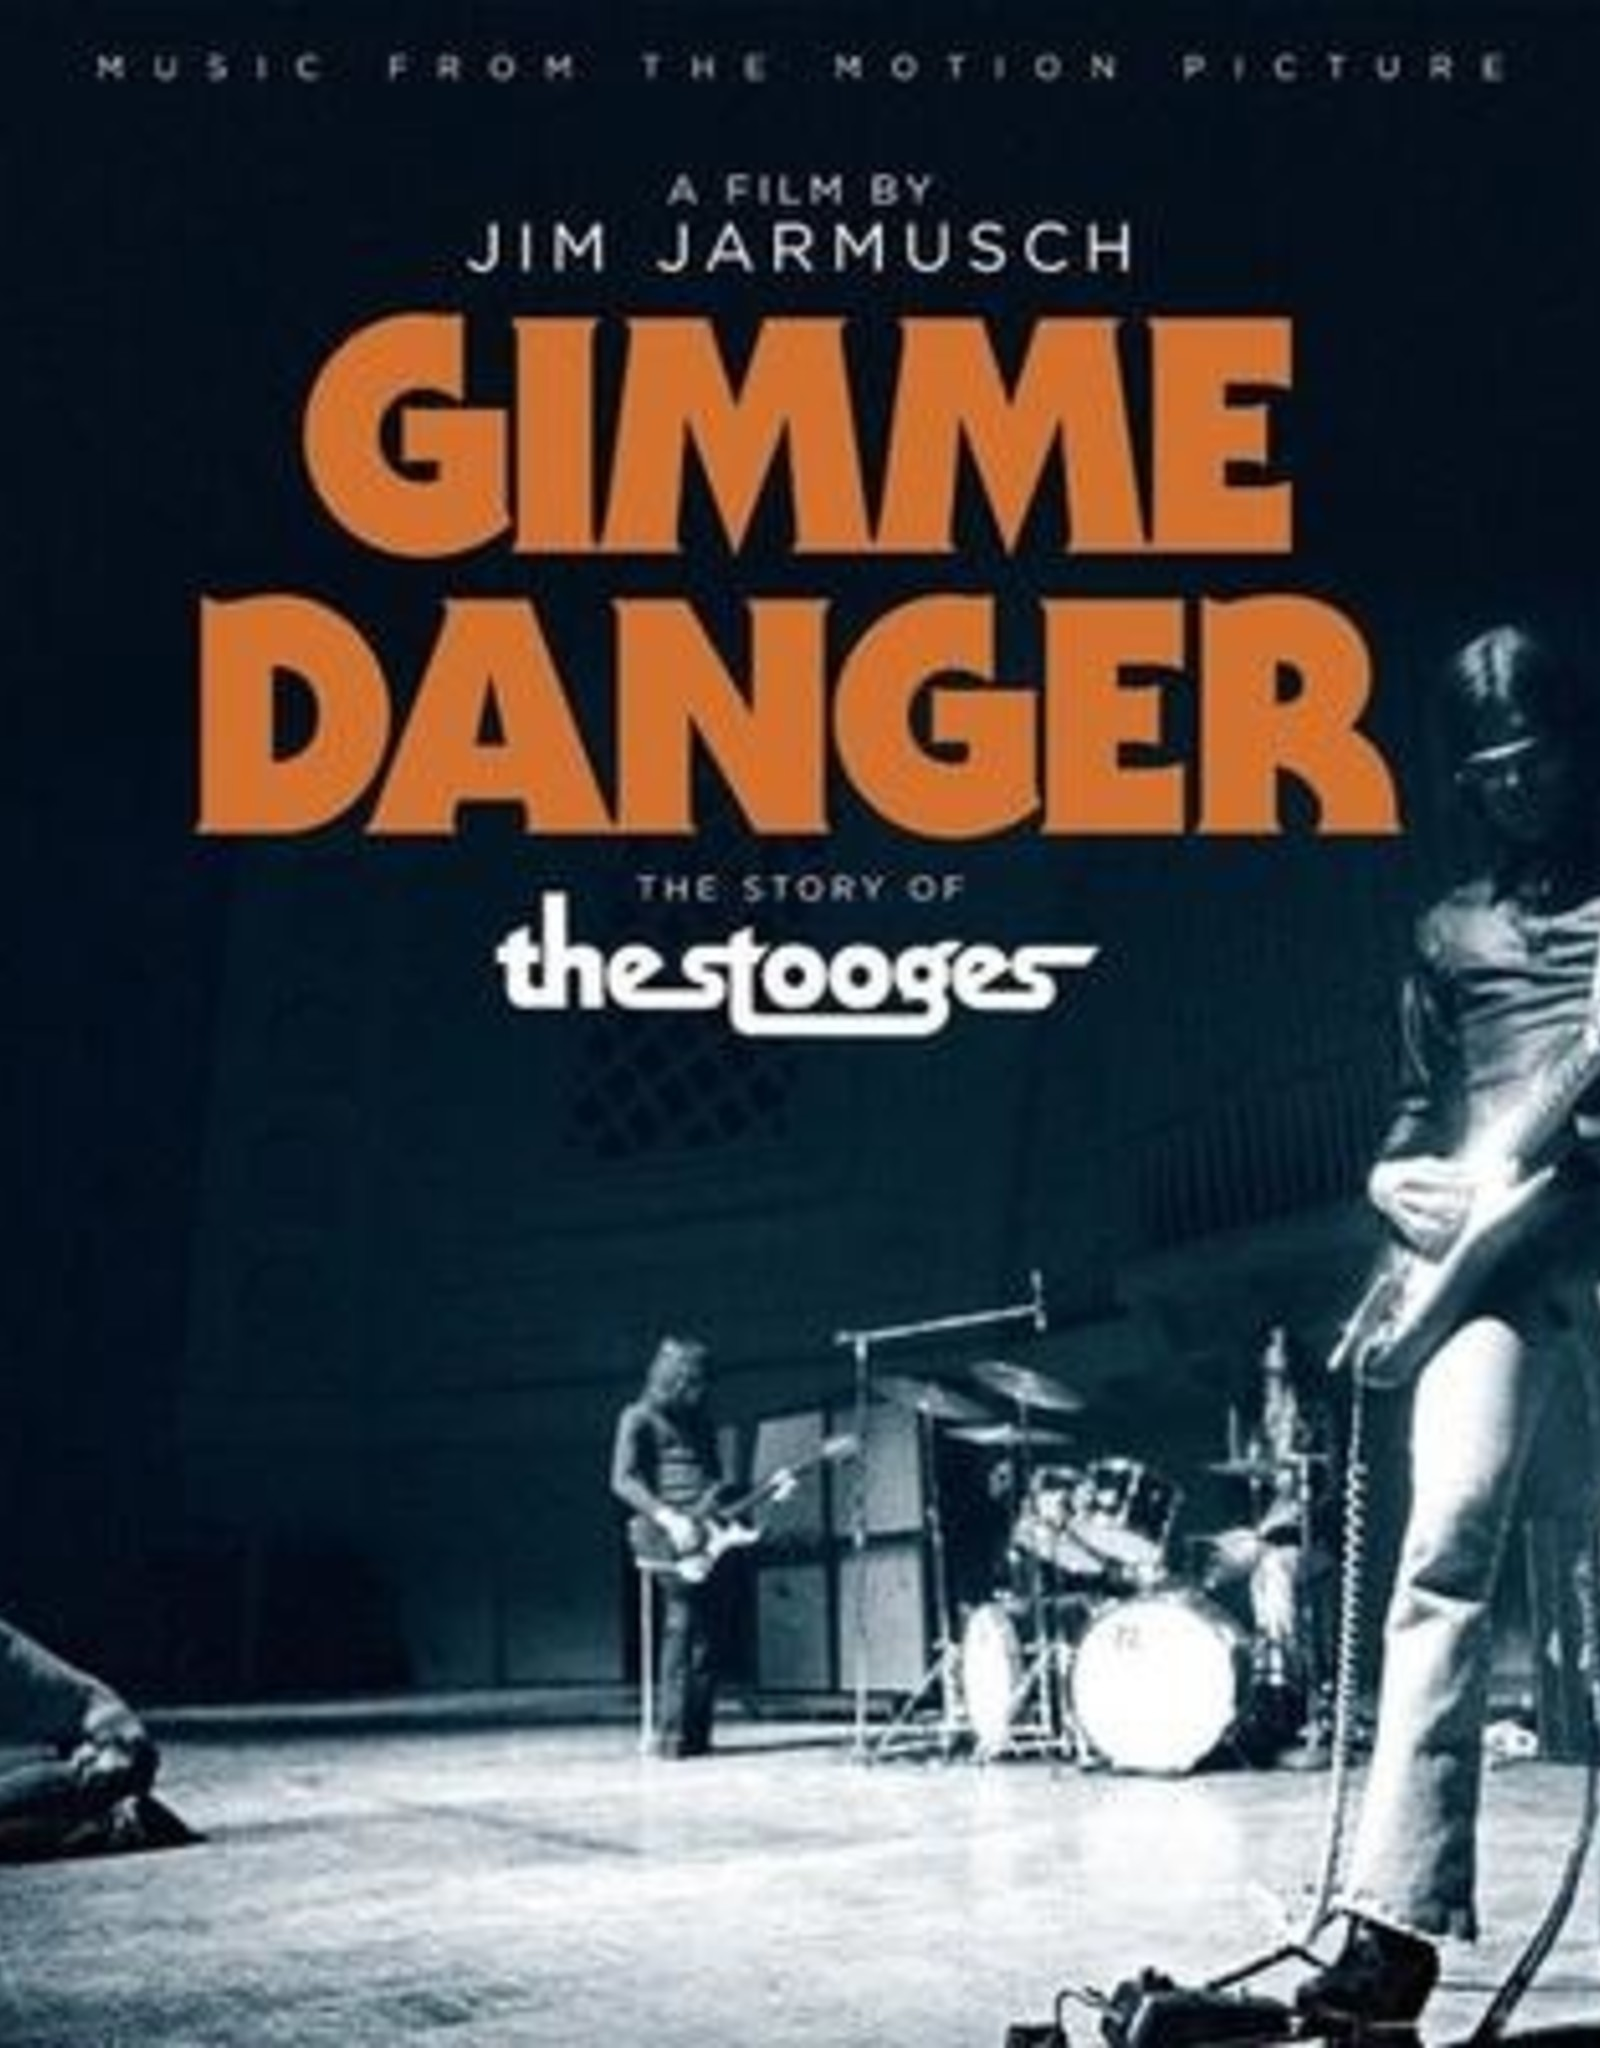 """Music From The Motion Picture """"Gimme Danger"""" - Gimme Danger: Music From The Motion Picture (Vinyl)"""